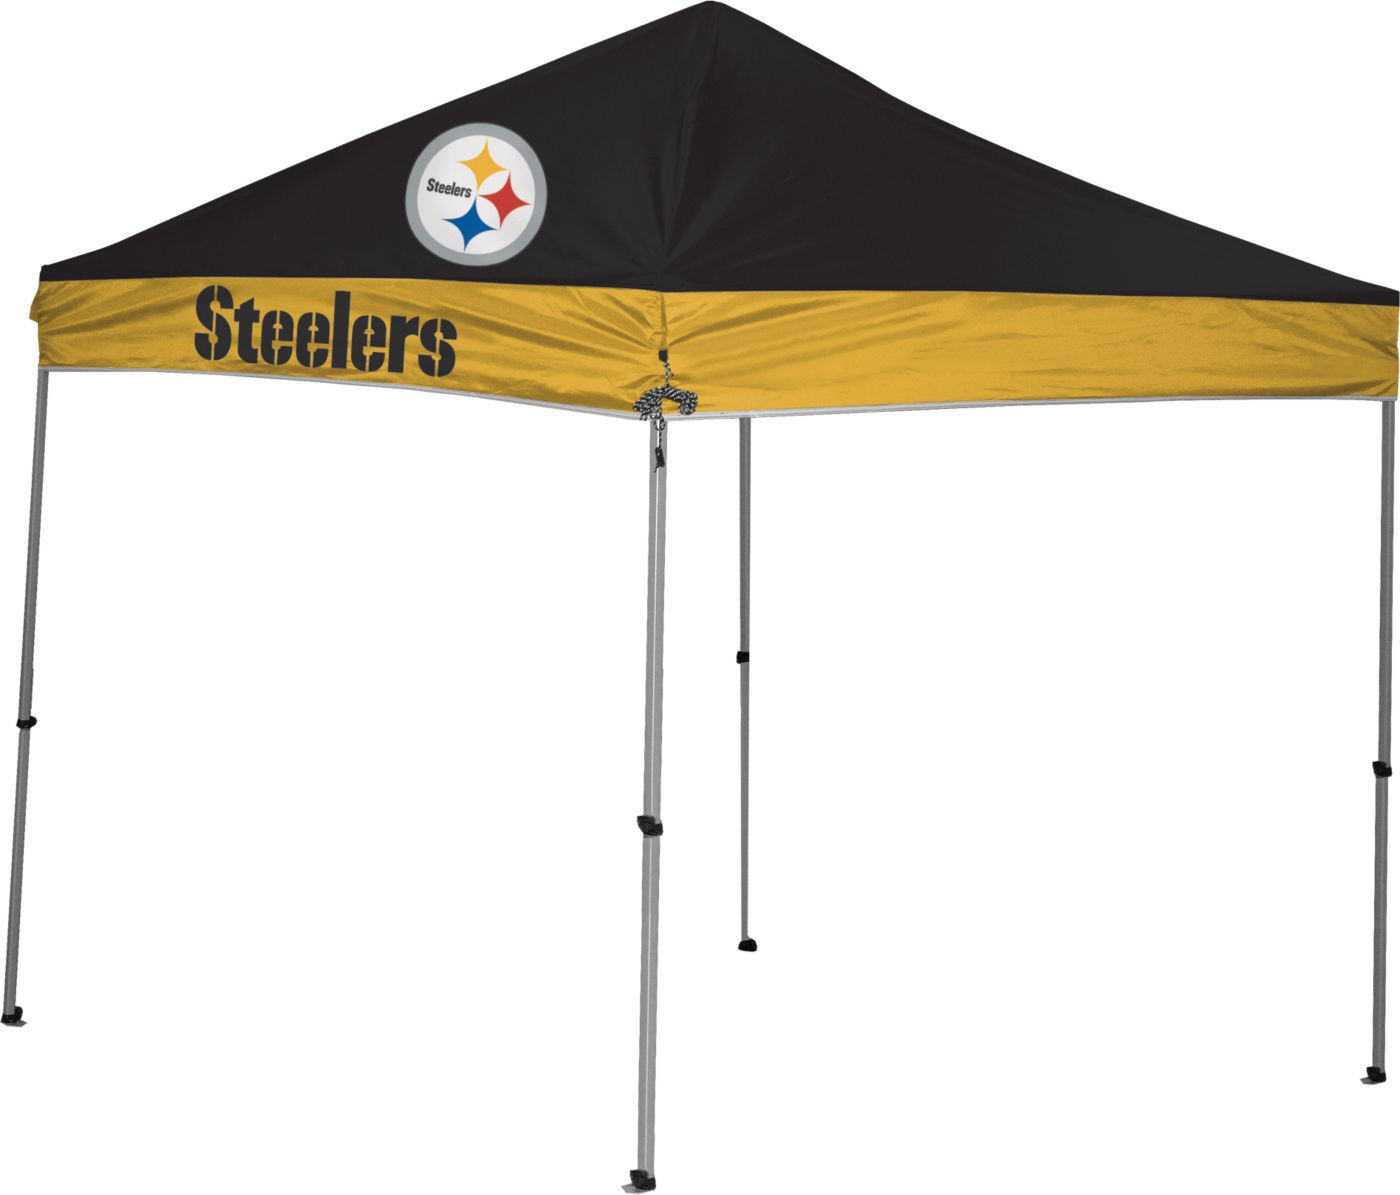 Rawlings Pittsburgh Steelers 9'x9' Canopy Tent